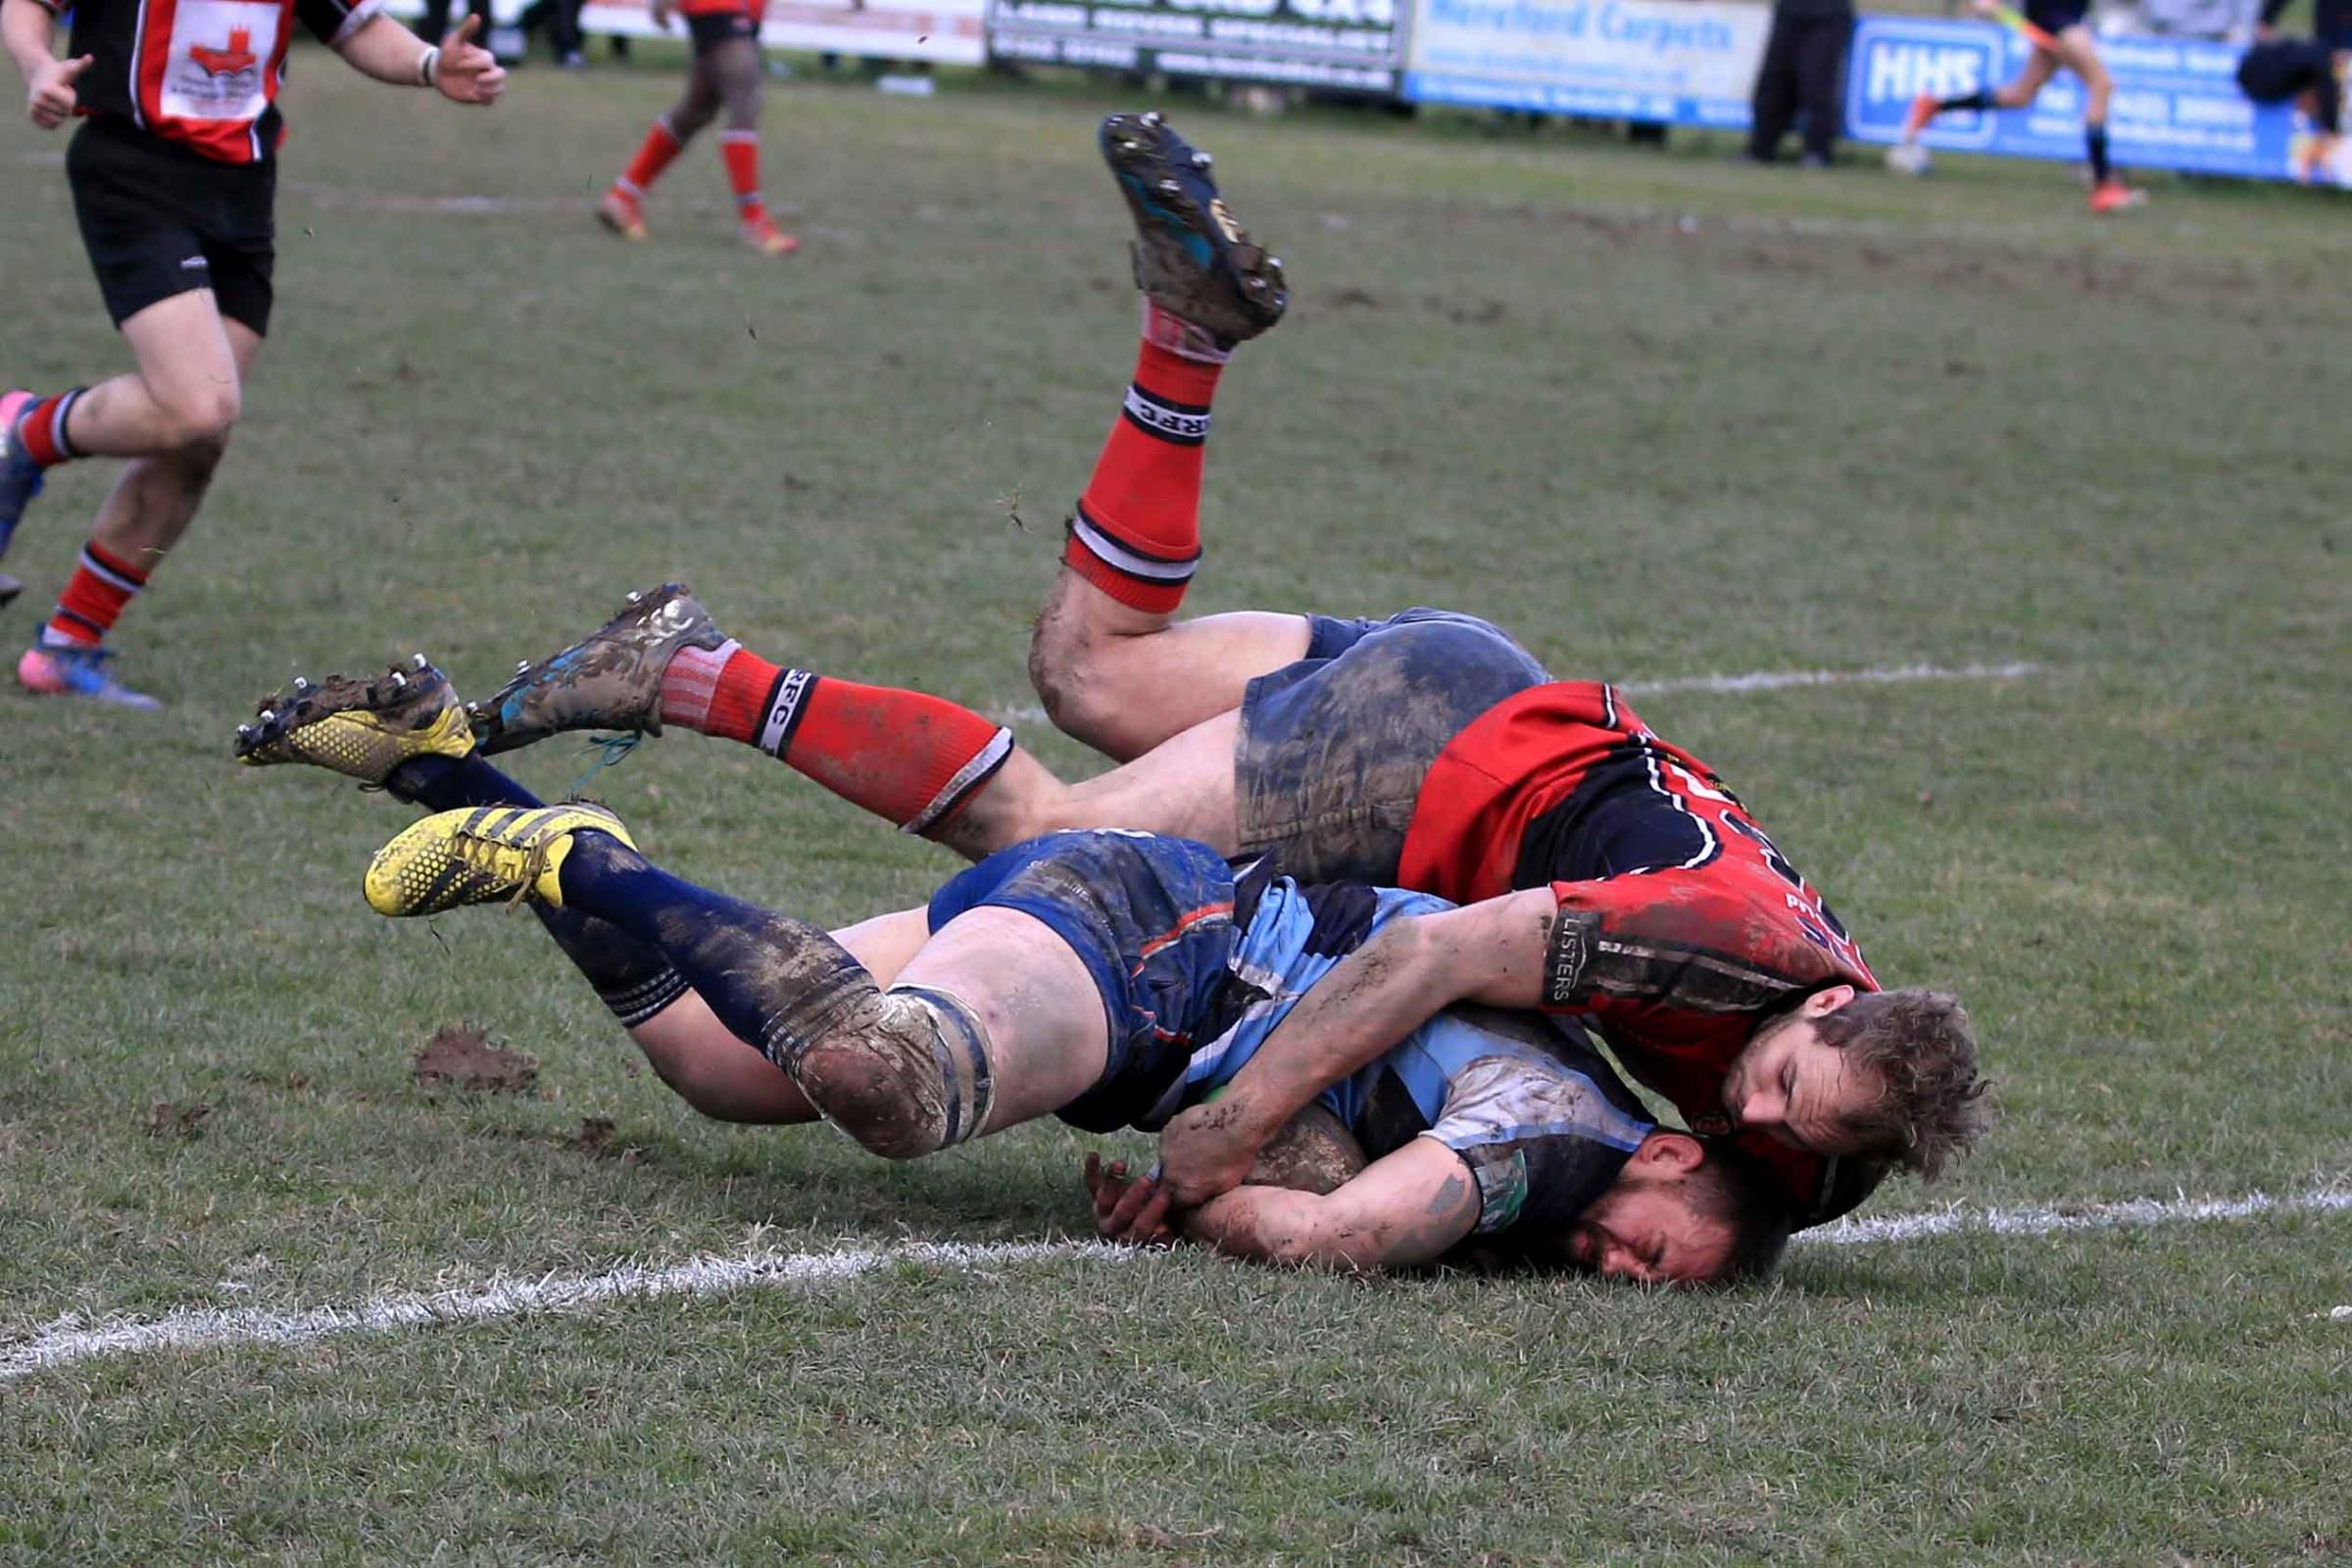 Stefan Shillingford dives for the goal line in Dudley Kingswinford's last game against Hereford. Photo: Ian Jackson